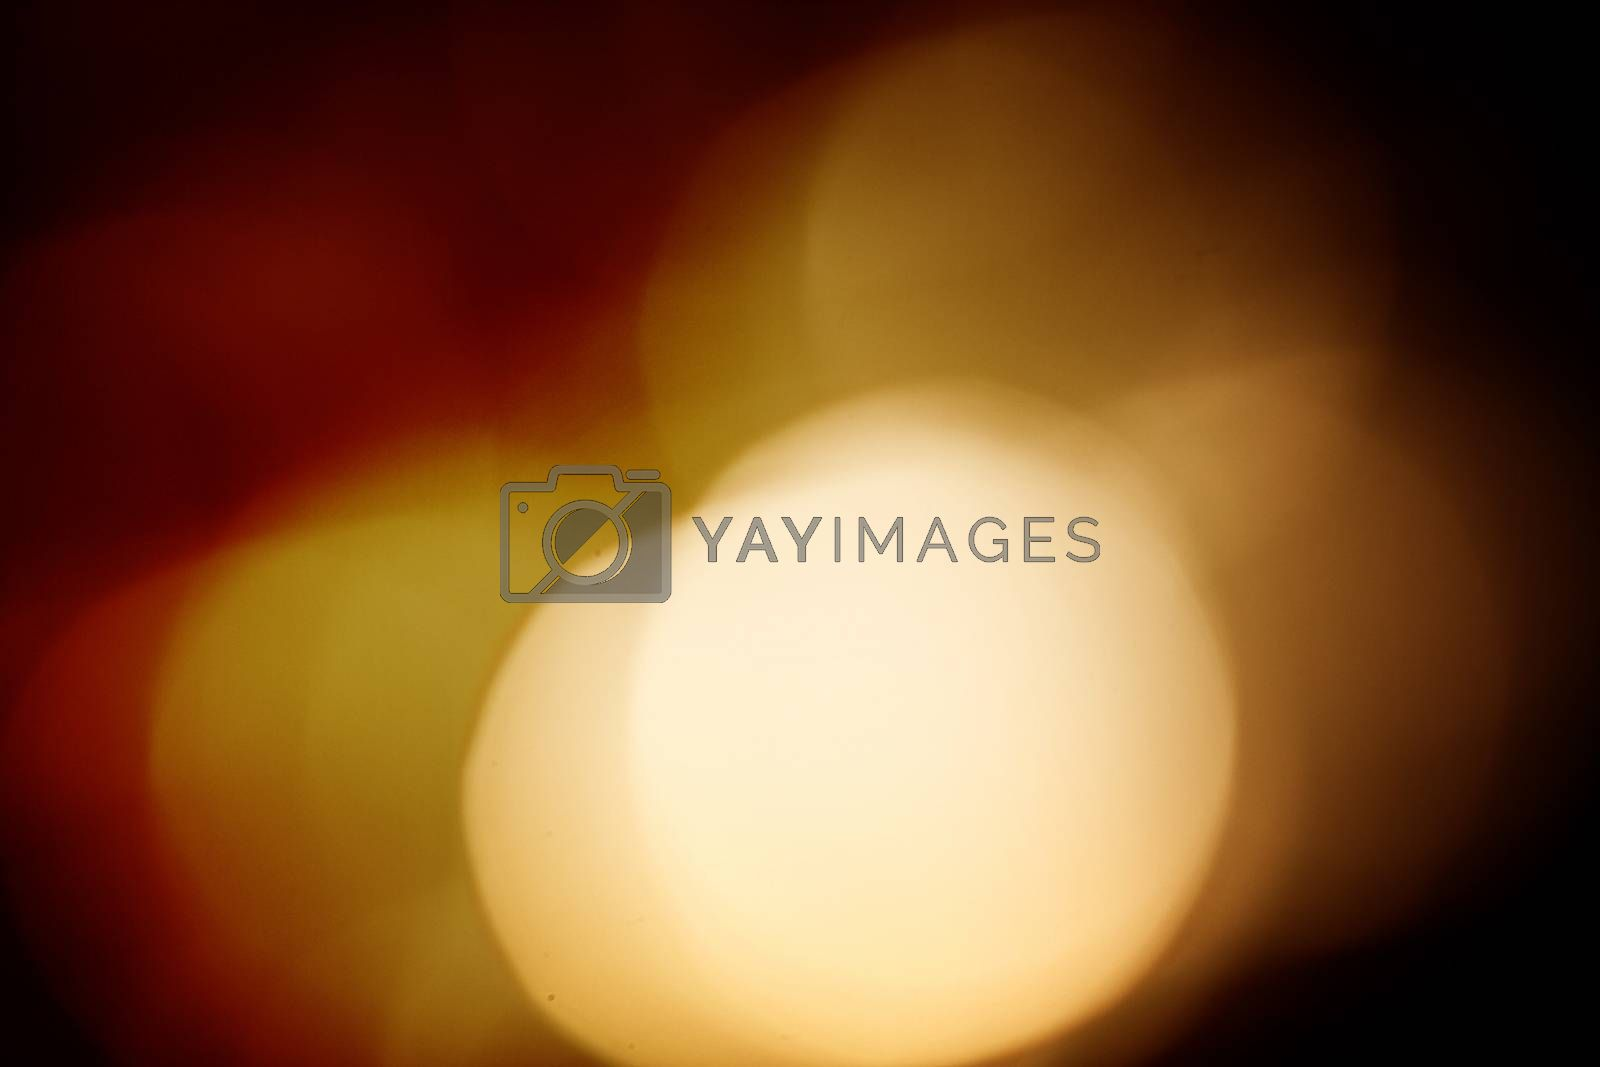 Blur image of an abstract light background